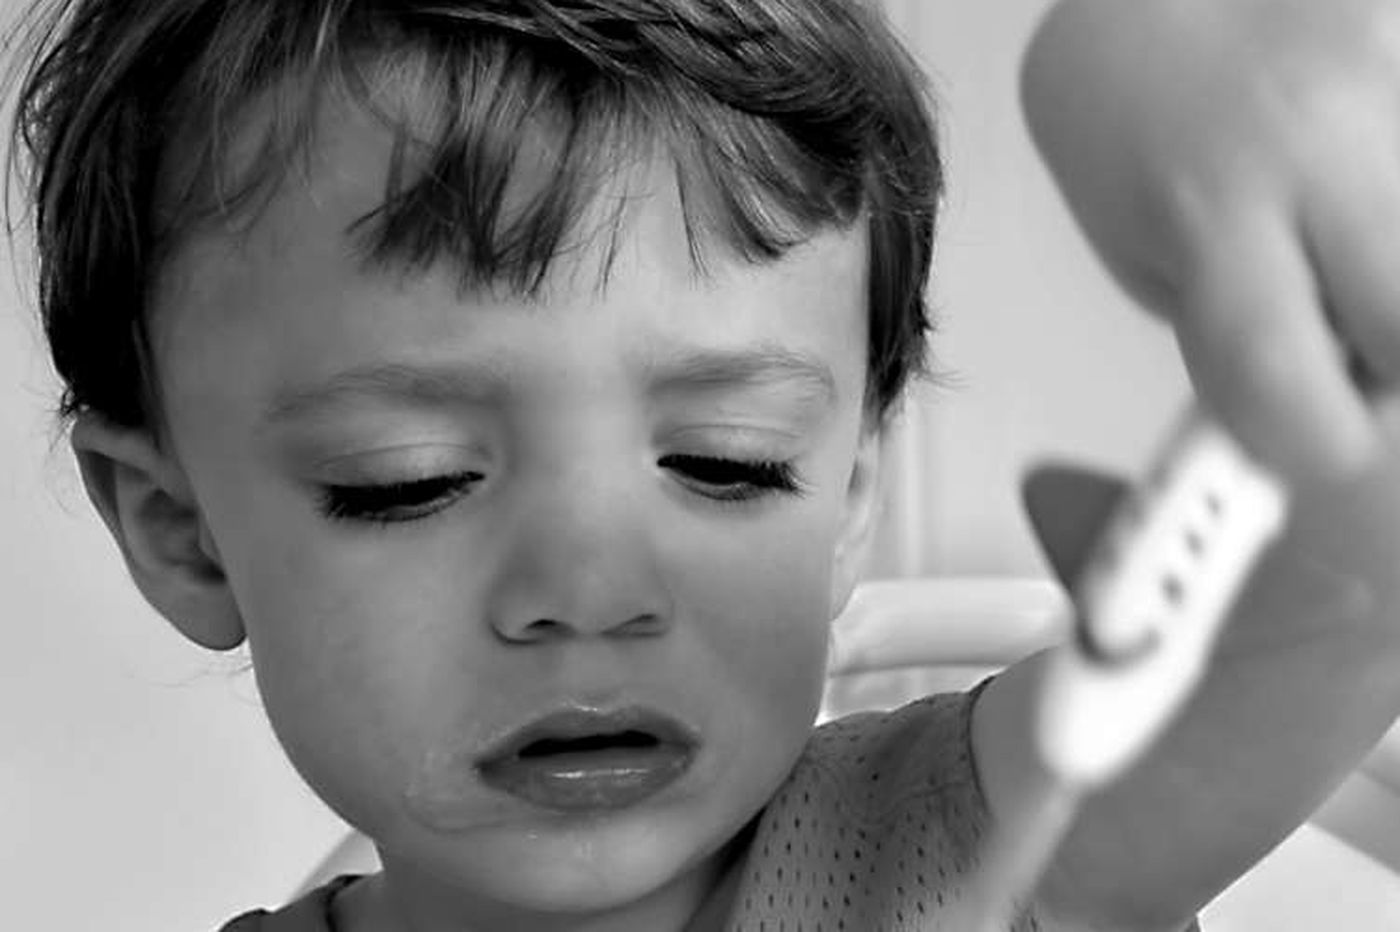 Picky eating can be sign of deeper troubles